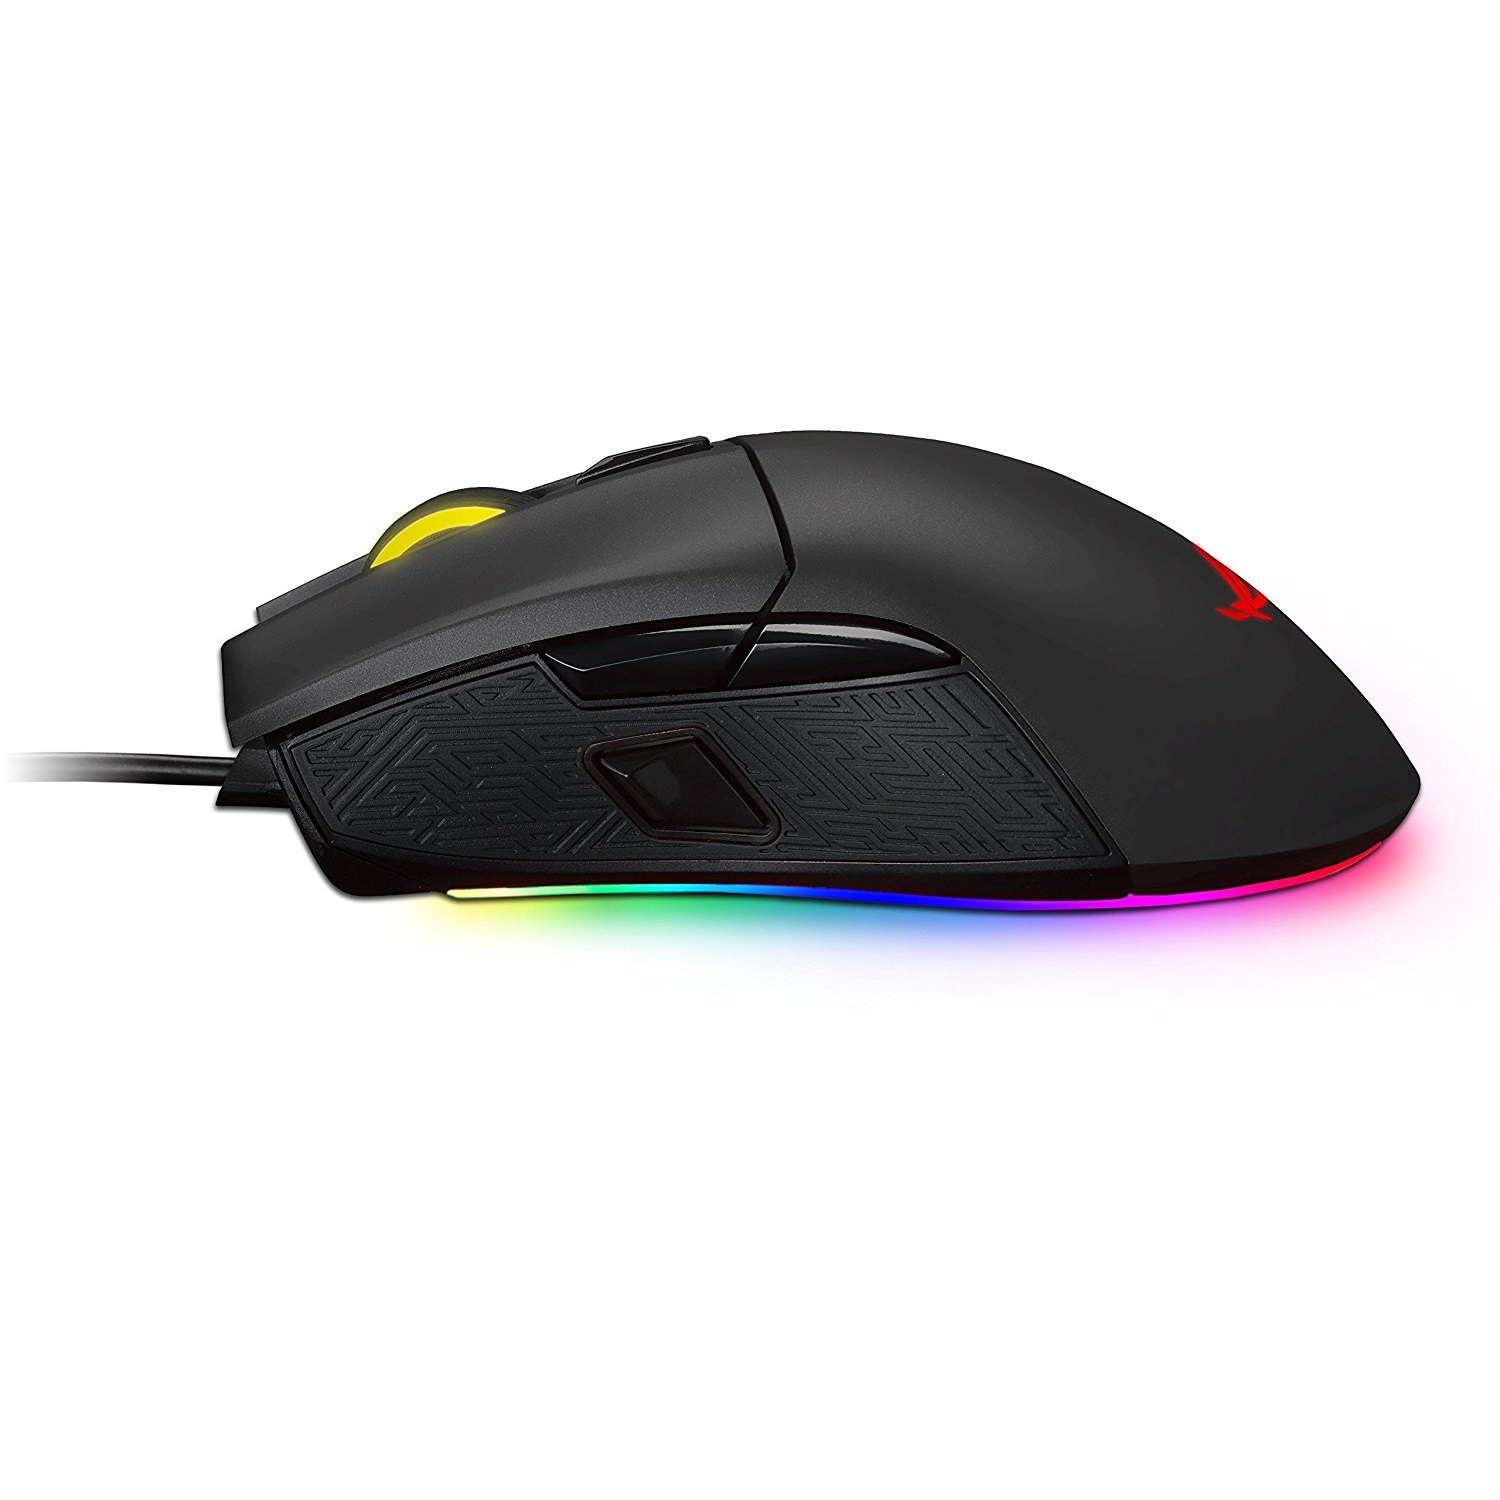 ASUS-ROG-Gladius-II-2-Aura-Sync-Wired-PNK-Wireless-Gaming-Mouse-All-Models-AW Indexbild 12